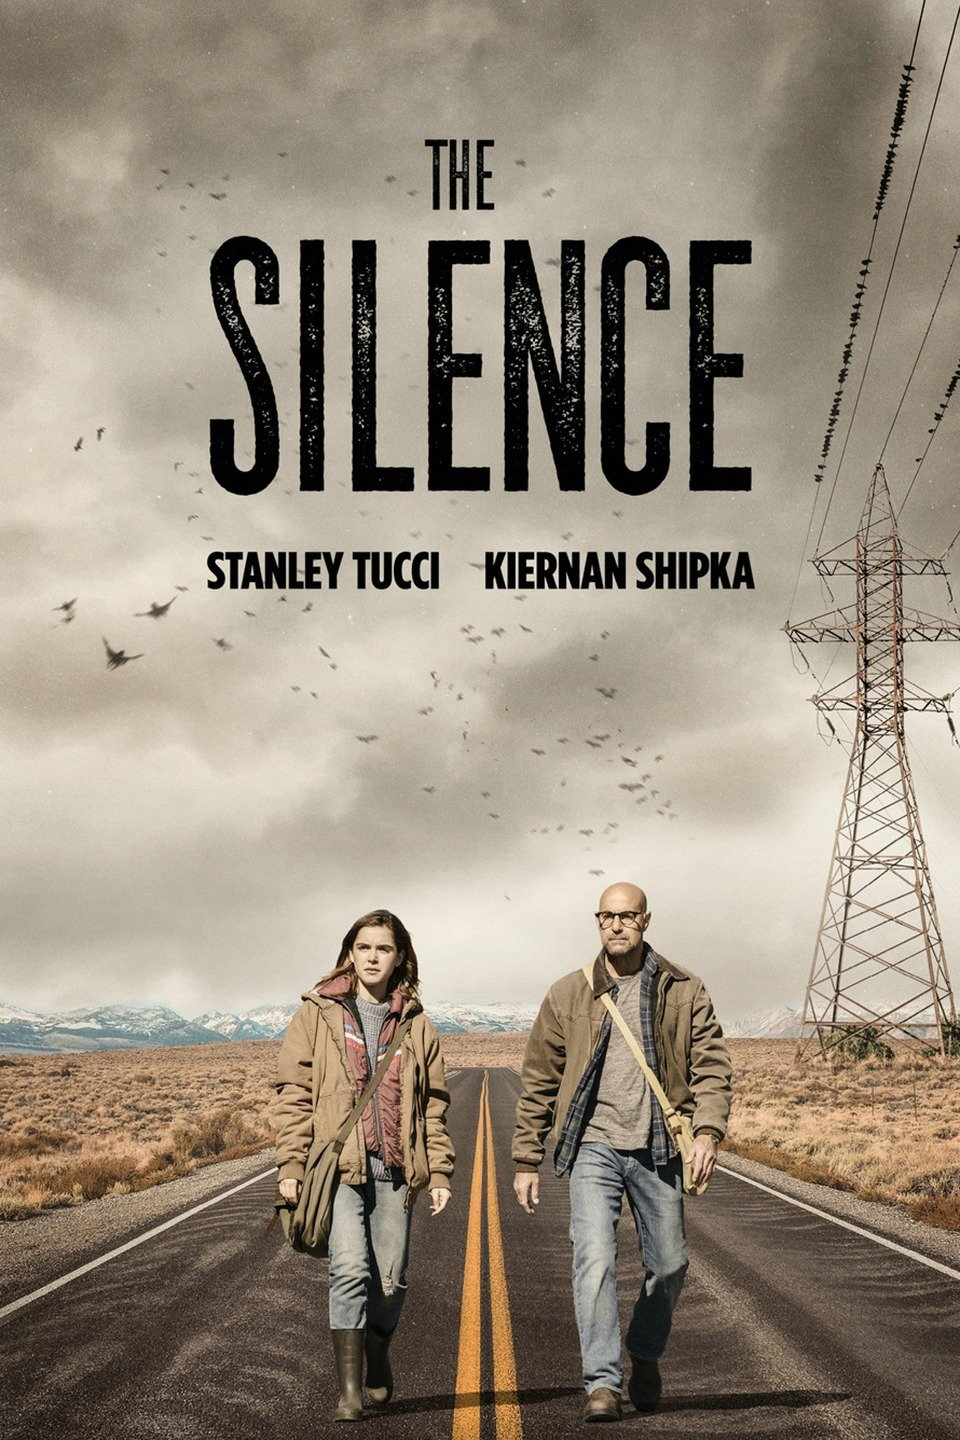 The Silence (2019) - Directed by: John R. LeonettiStarring: Kiernan Shipka, Miranda Otto, Stanley TucciRated: PG-13Running Time: 1h 30mTMM Score: 1.5 StarsSTRENGTHS: Neat deathsWEAKNESSES: Poor Direction, Contrived Plot, Pointless